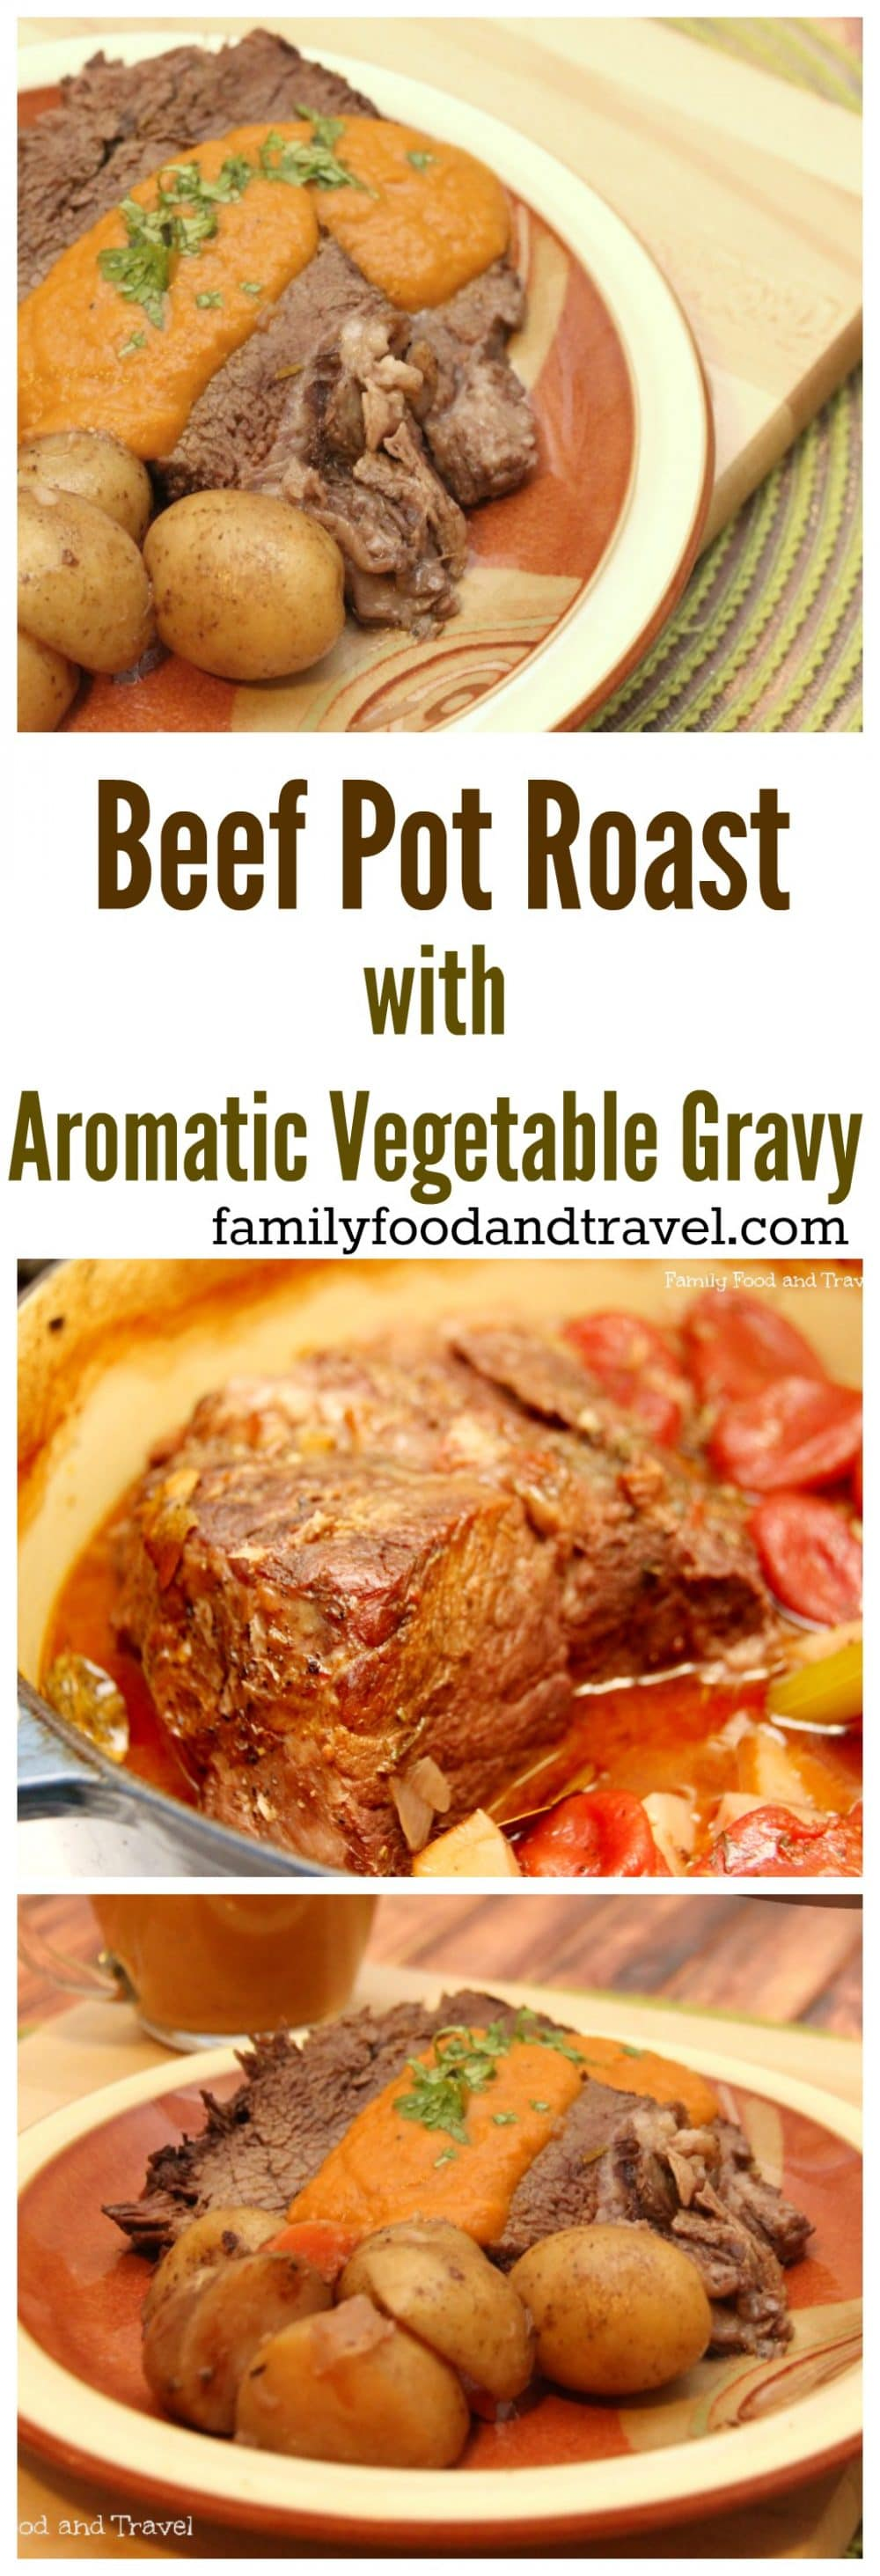 Beef Pot Roast with Aromatic Vegetable Gravy